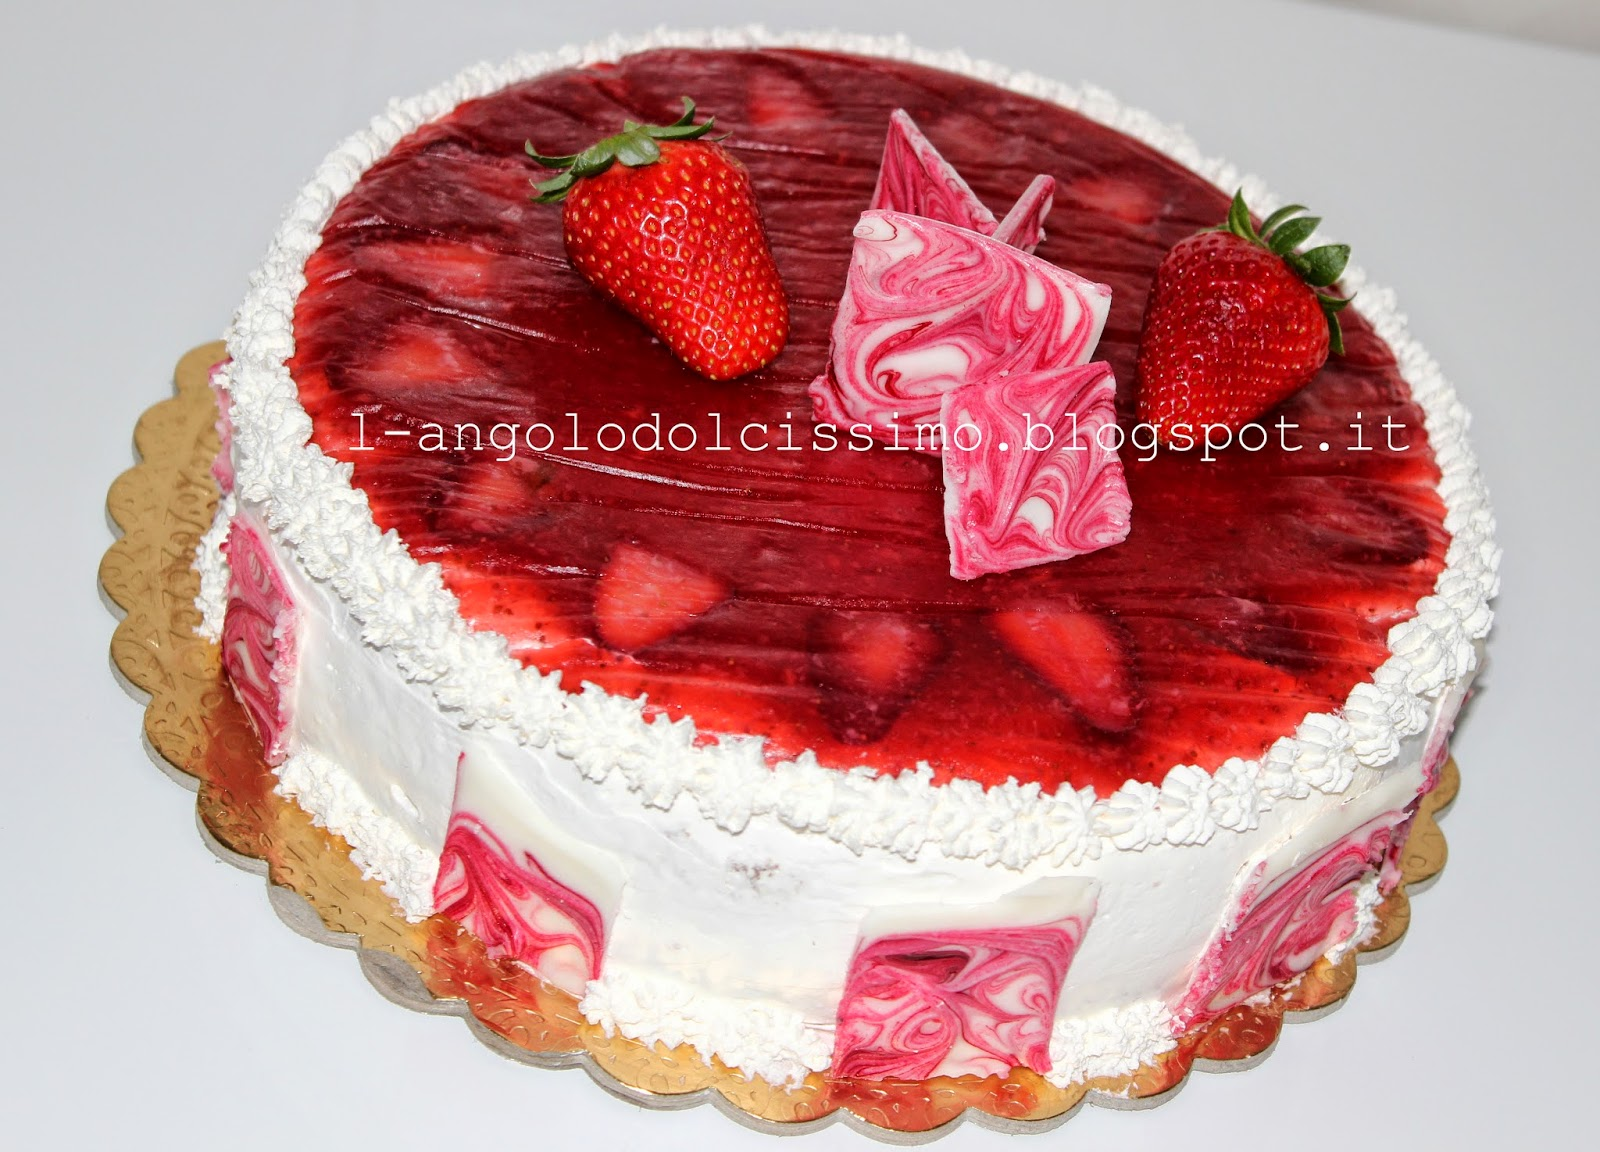 Bagna Per Torta Alle Fragole L 39 Angolo Dolcissimo Torta Pannosa Alle Fragole